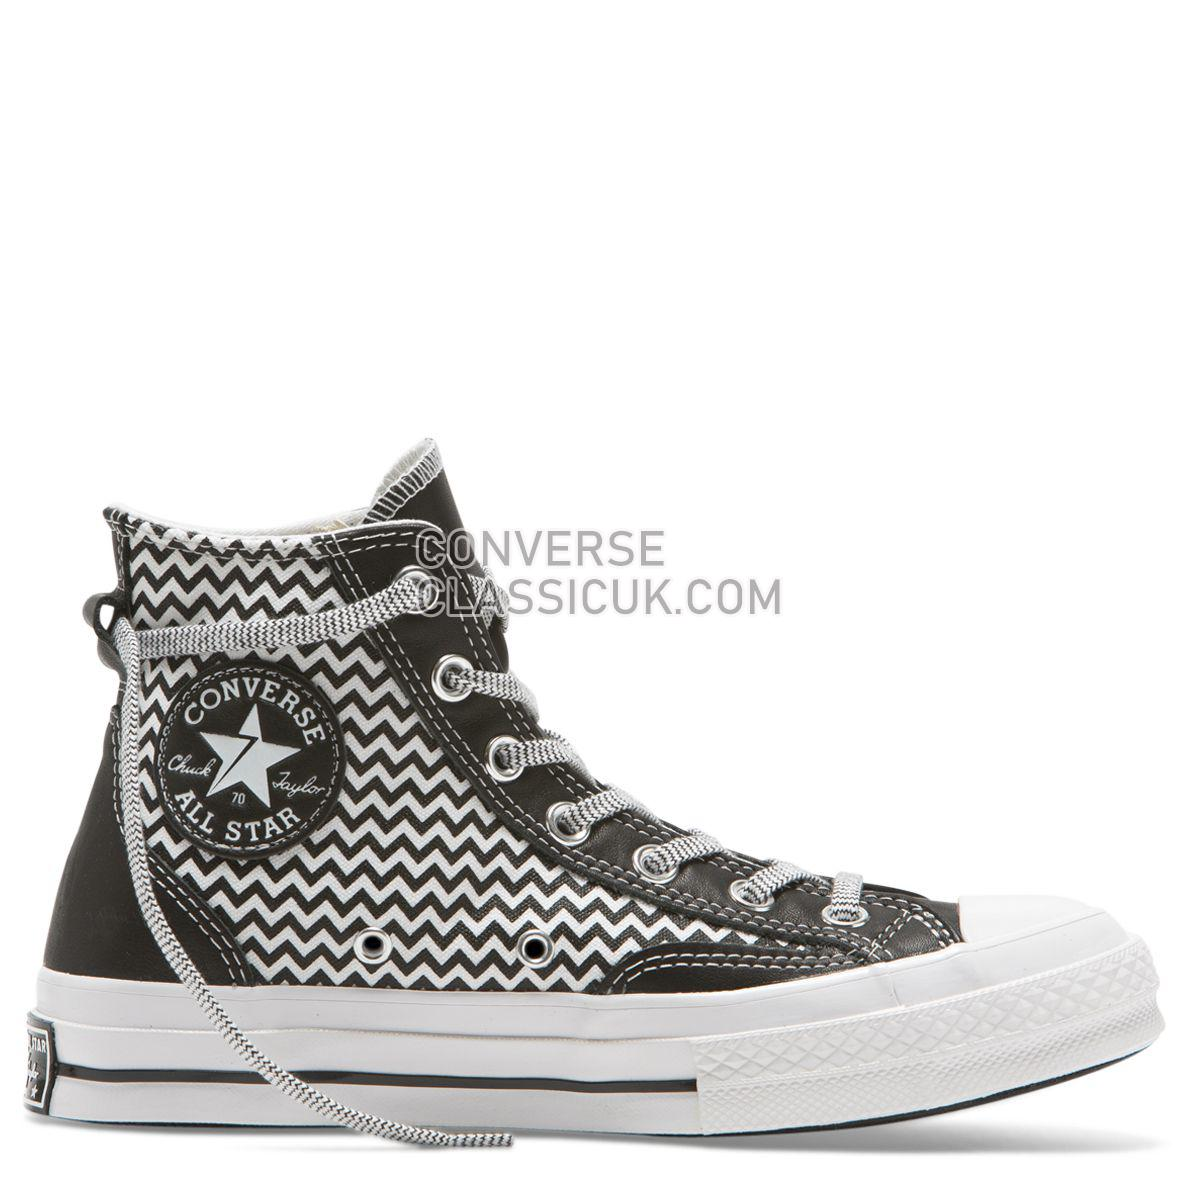 Converse Chuck Taylor All Star 70 Mission-V High Top Converse Black Womens 564969 Converse Black/White/White Shoes